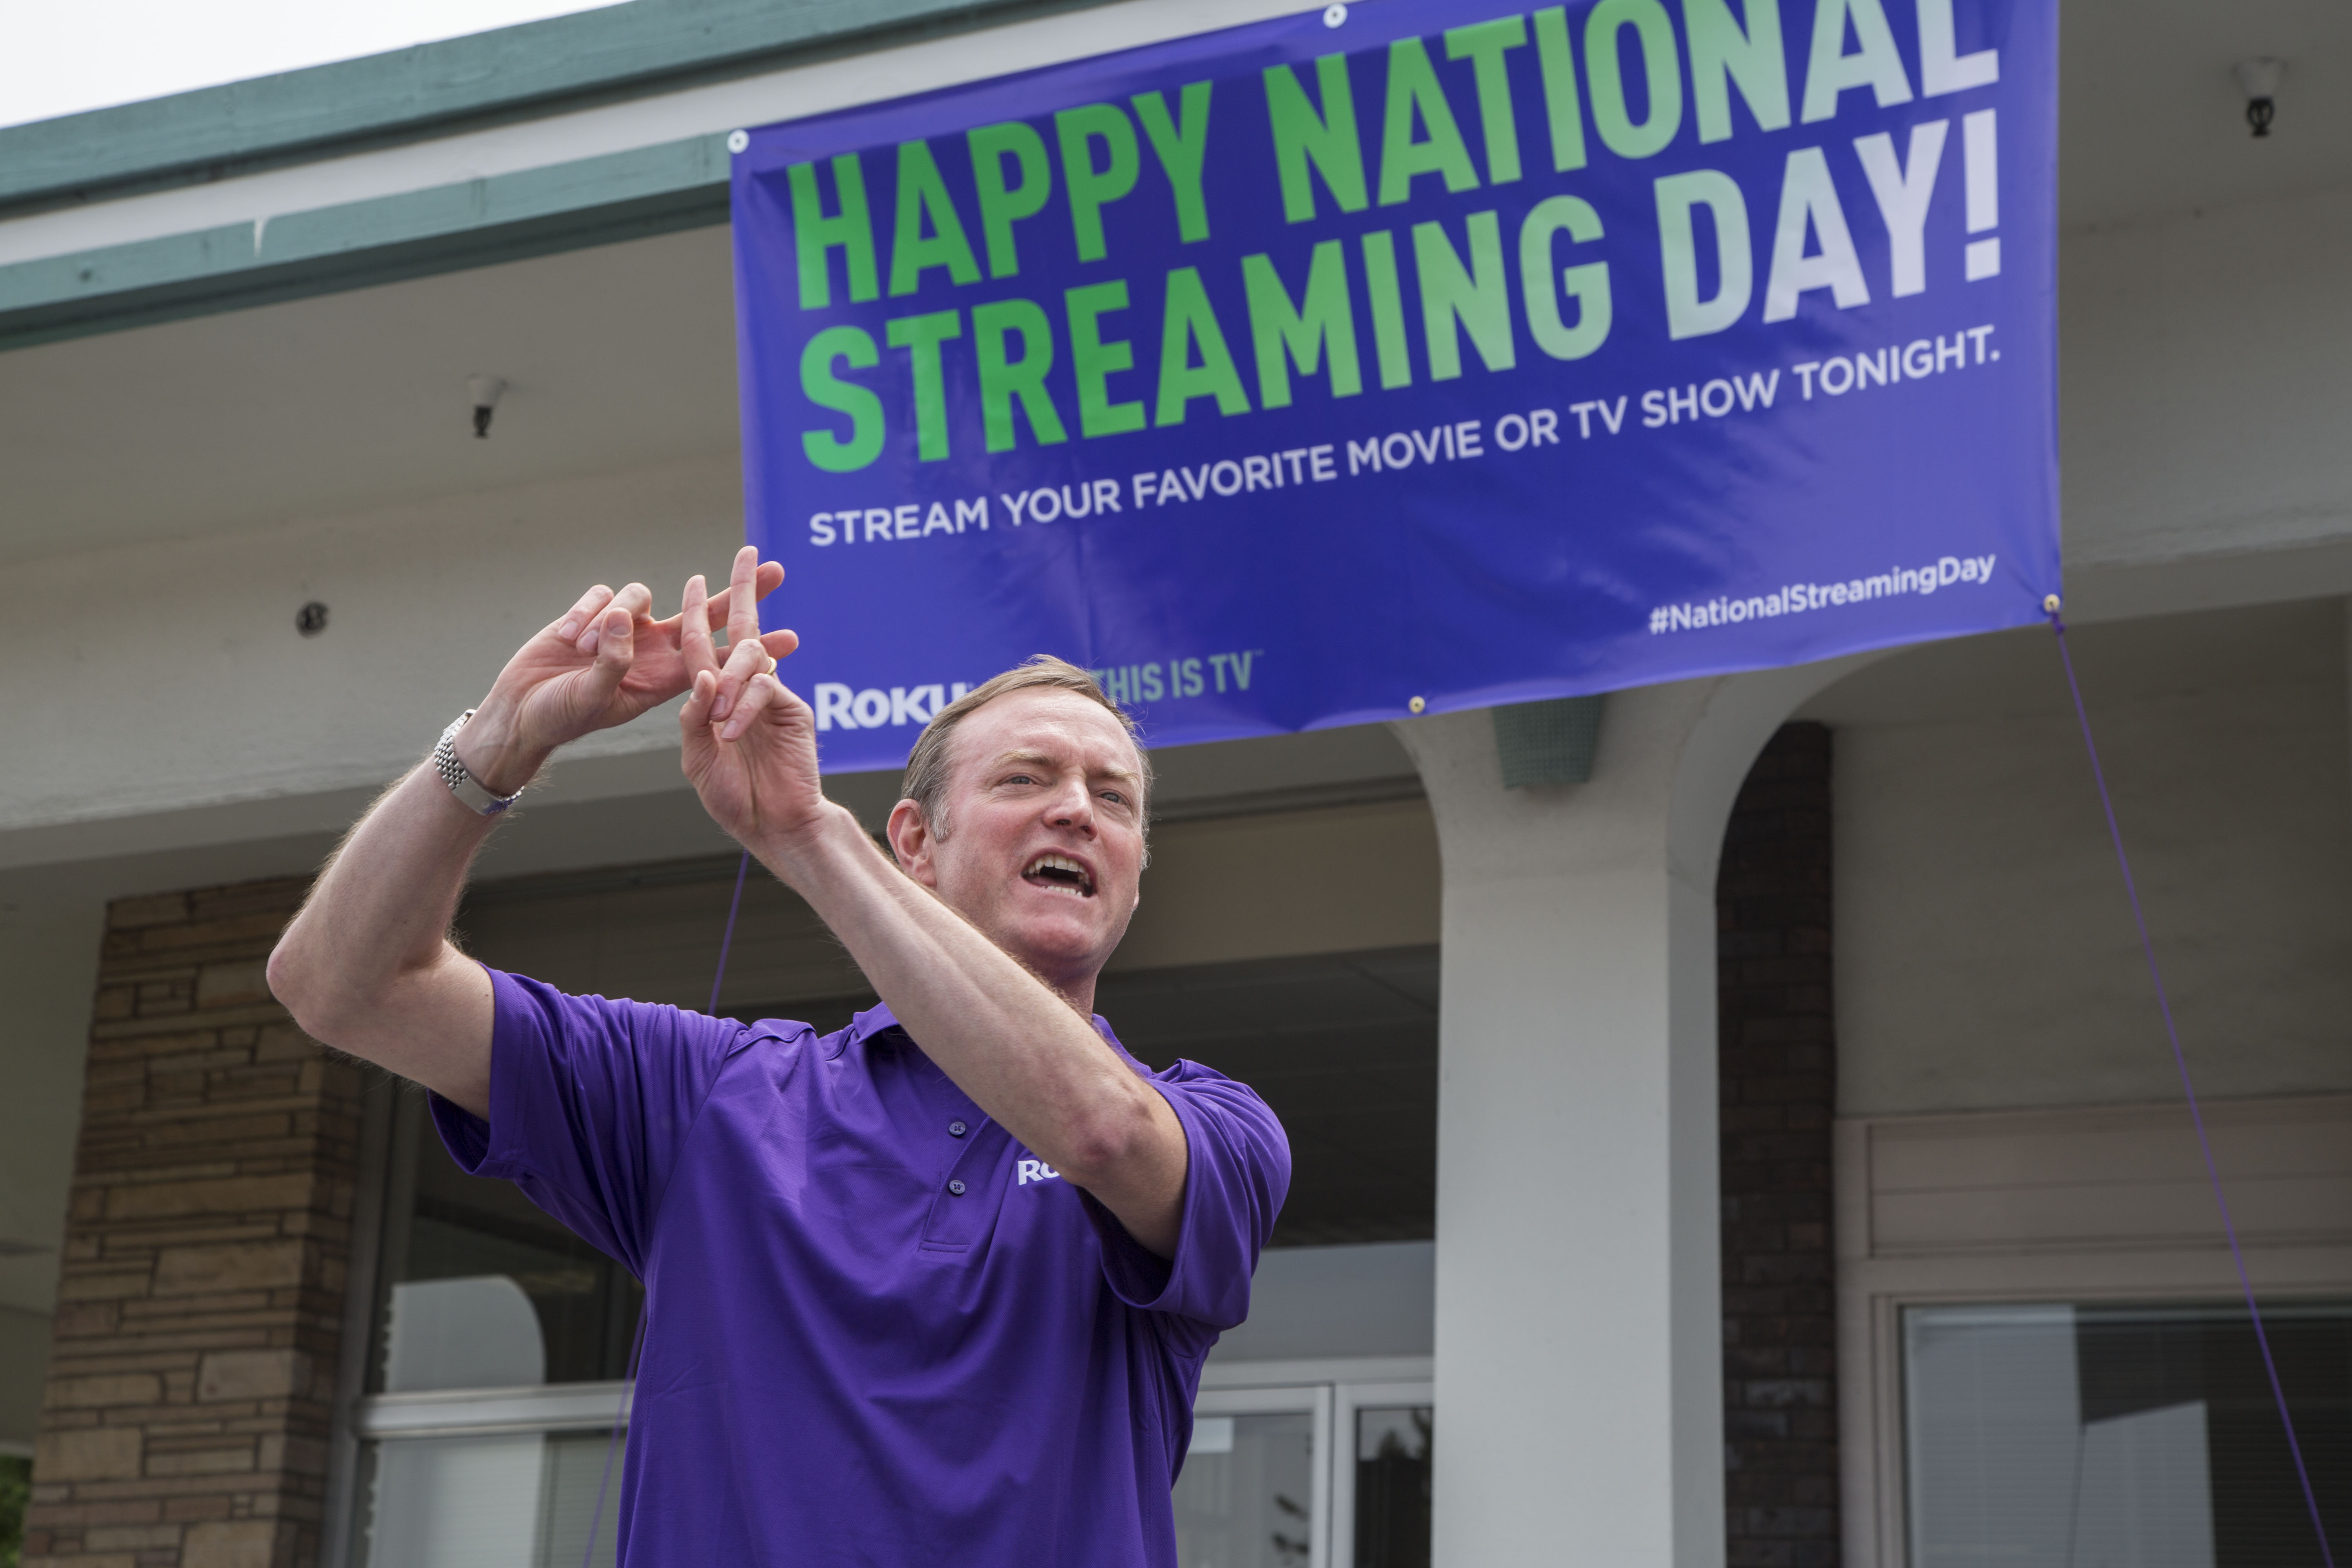 roku_streamingday2014_web_9